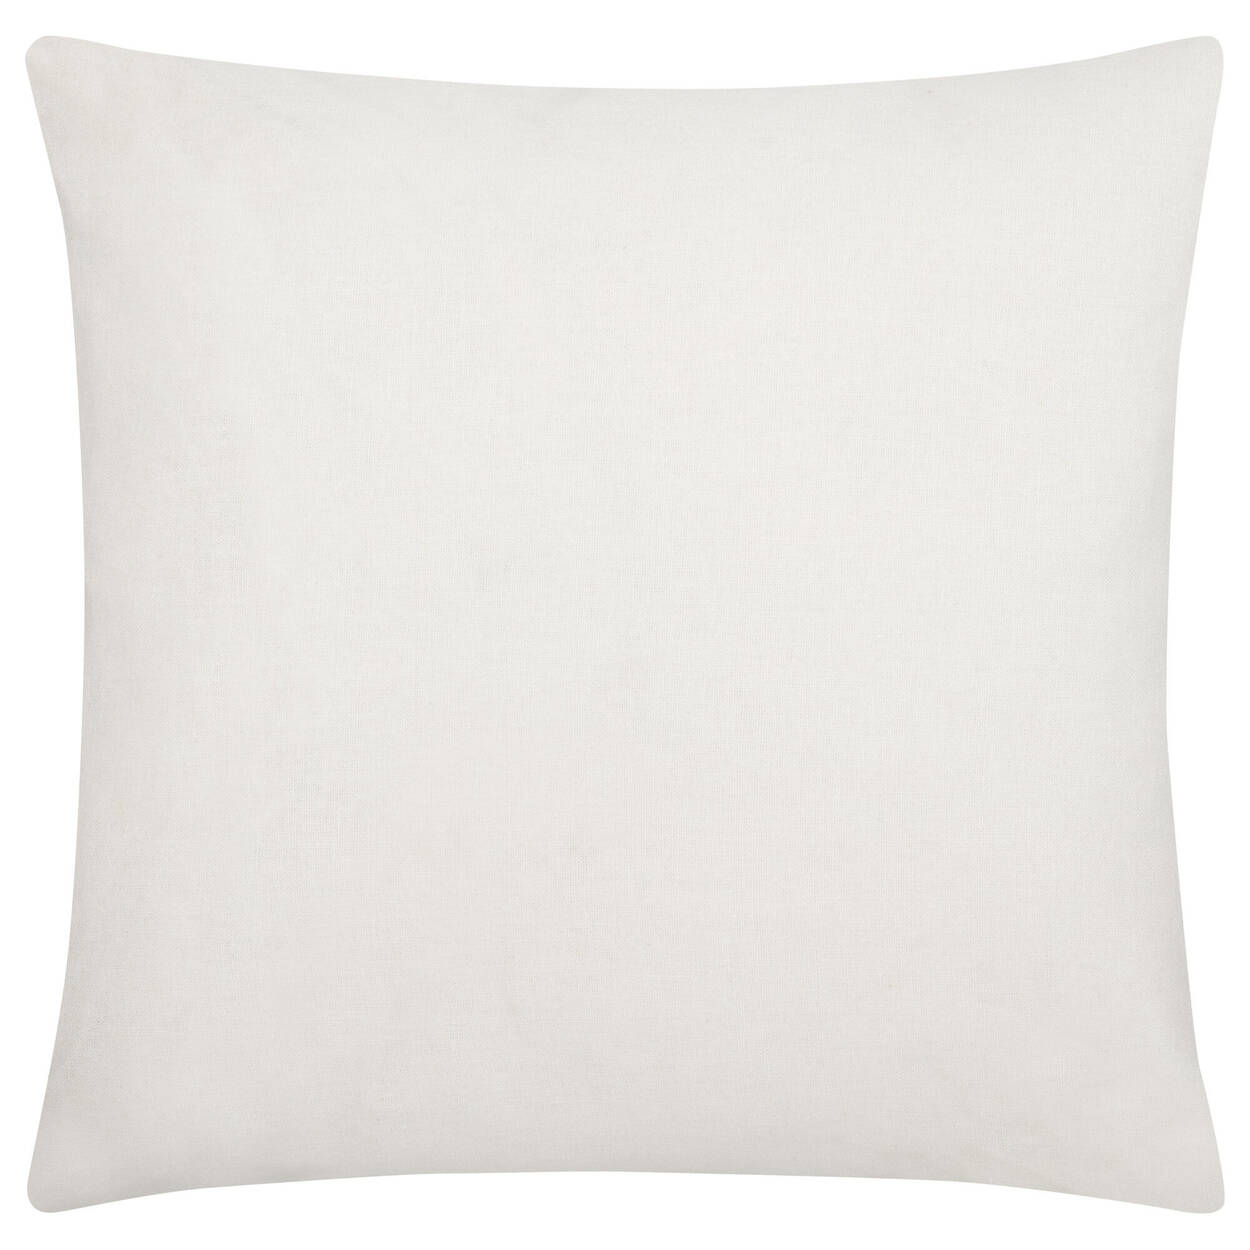 "Haja Embroidered Decorative Pillow 19"" X 19"""